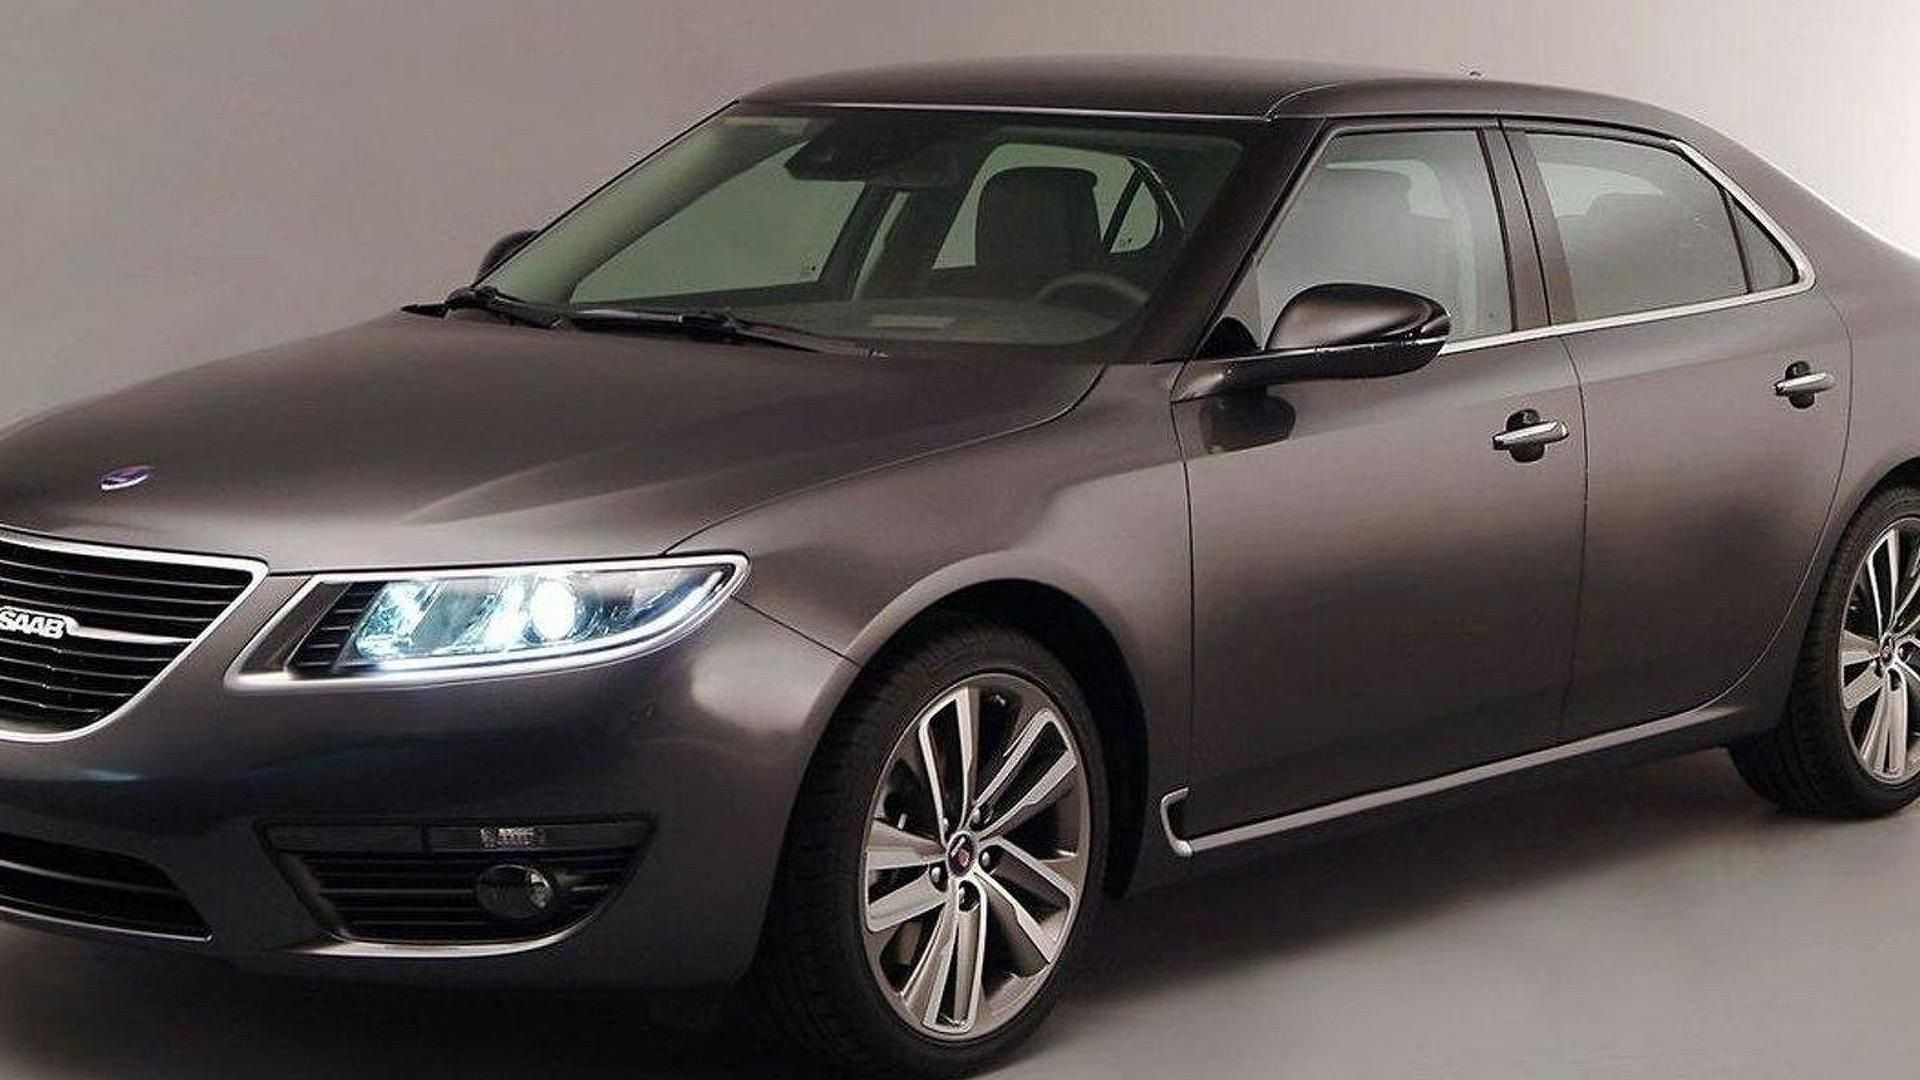 88 All New 2020 Saab 9 5 Review